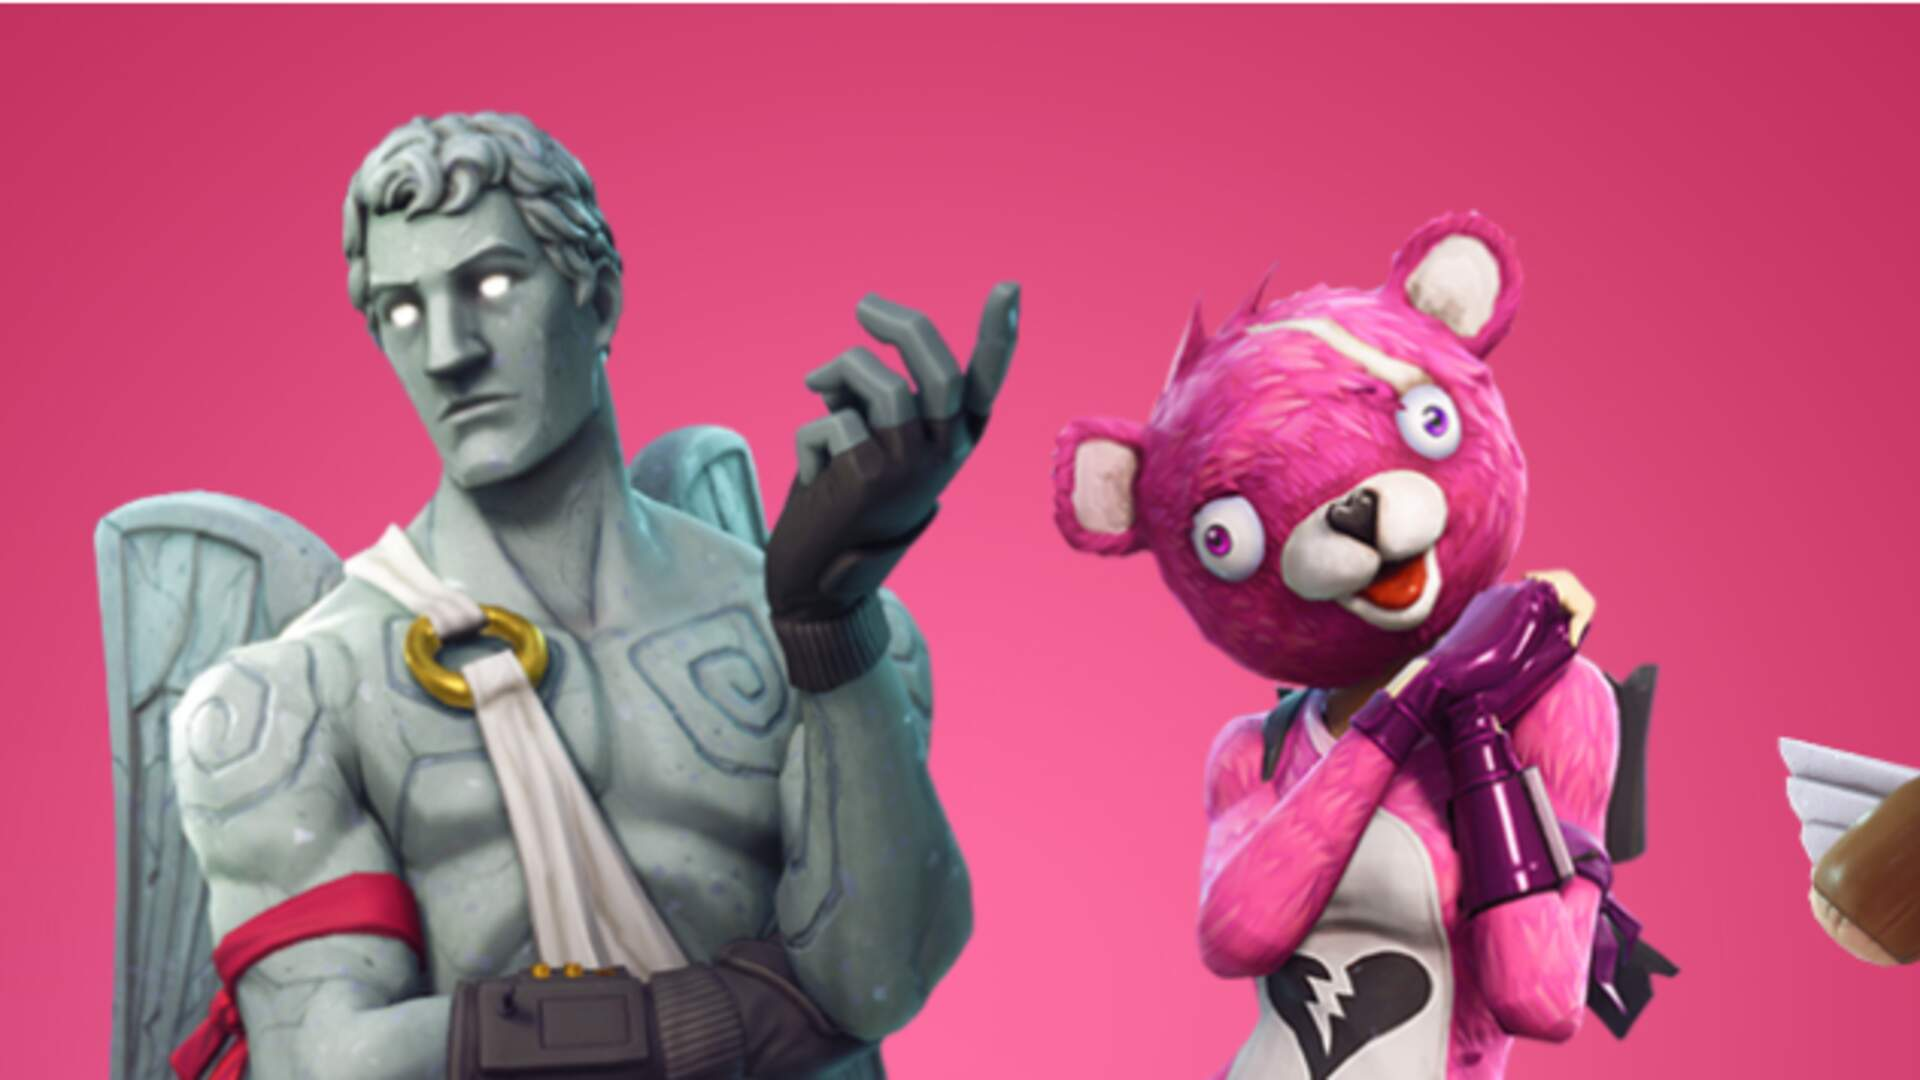 Fortnite Adds New Skins and Weapons for Valentine's Day